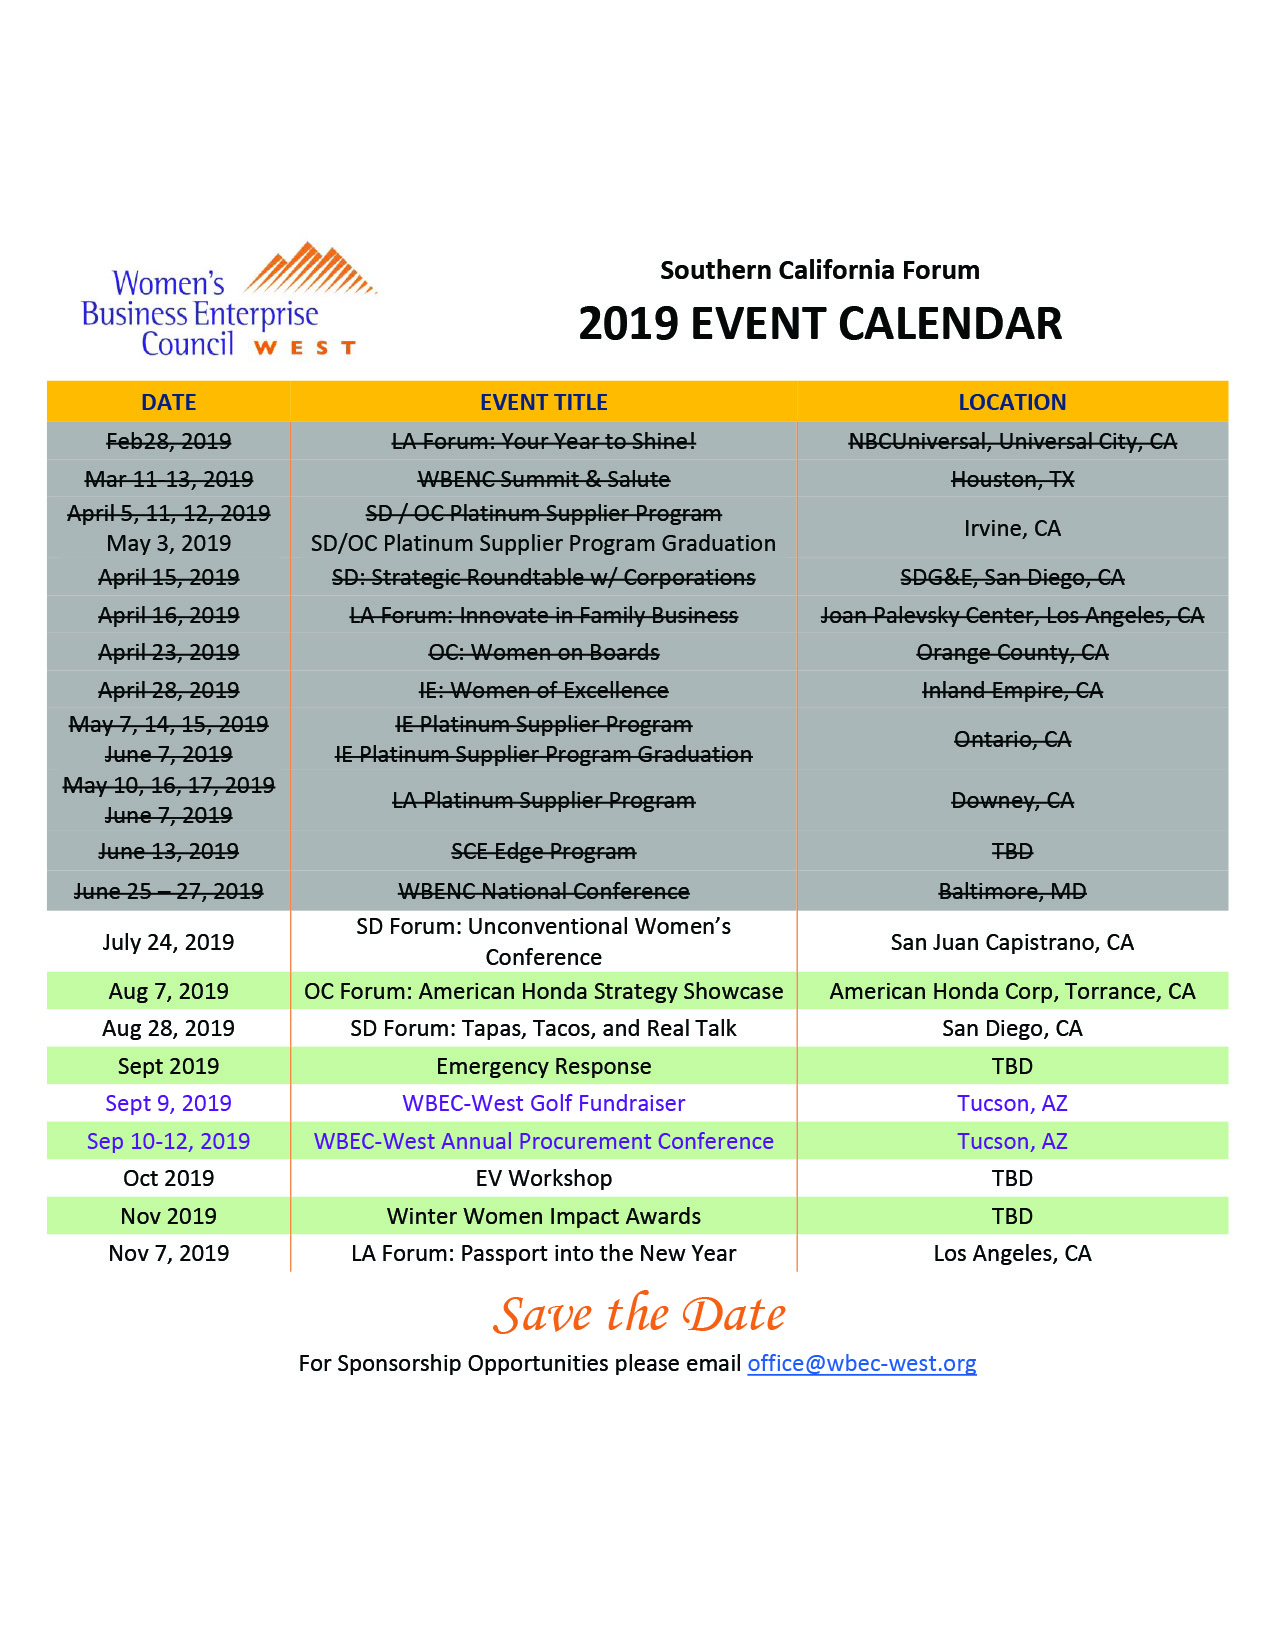 Southern California Forum Events